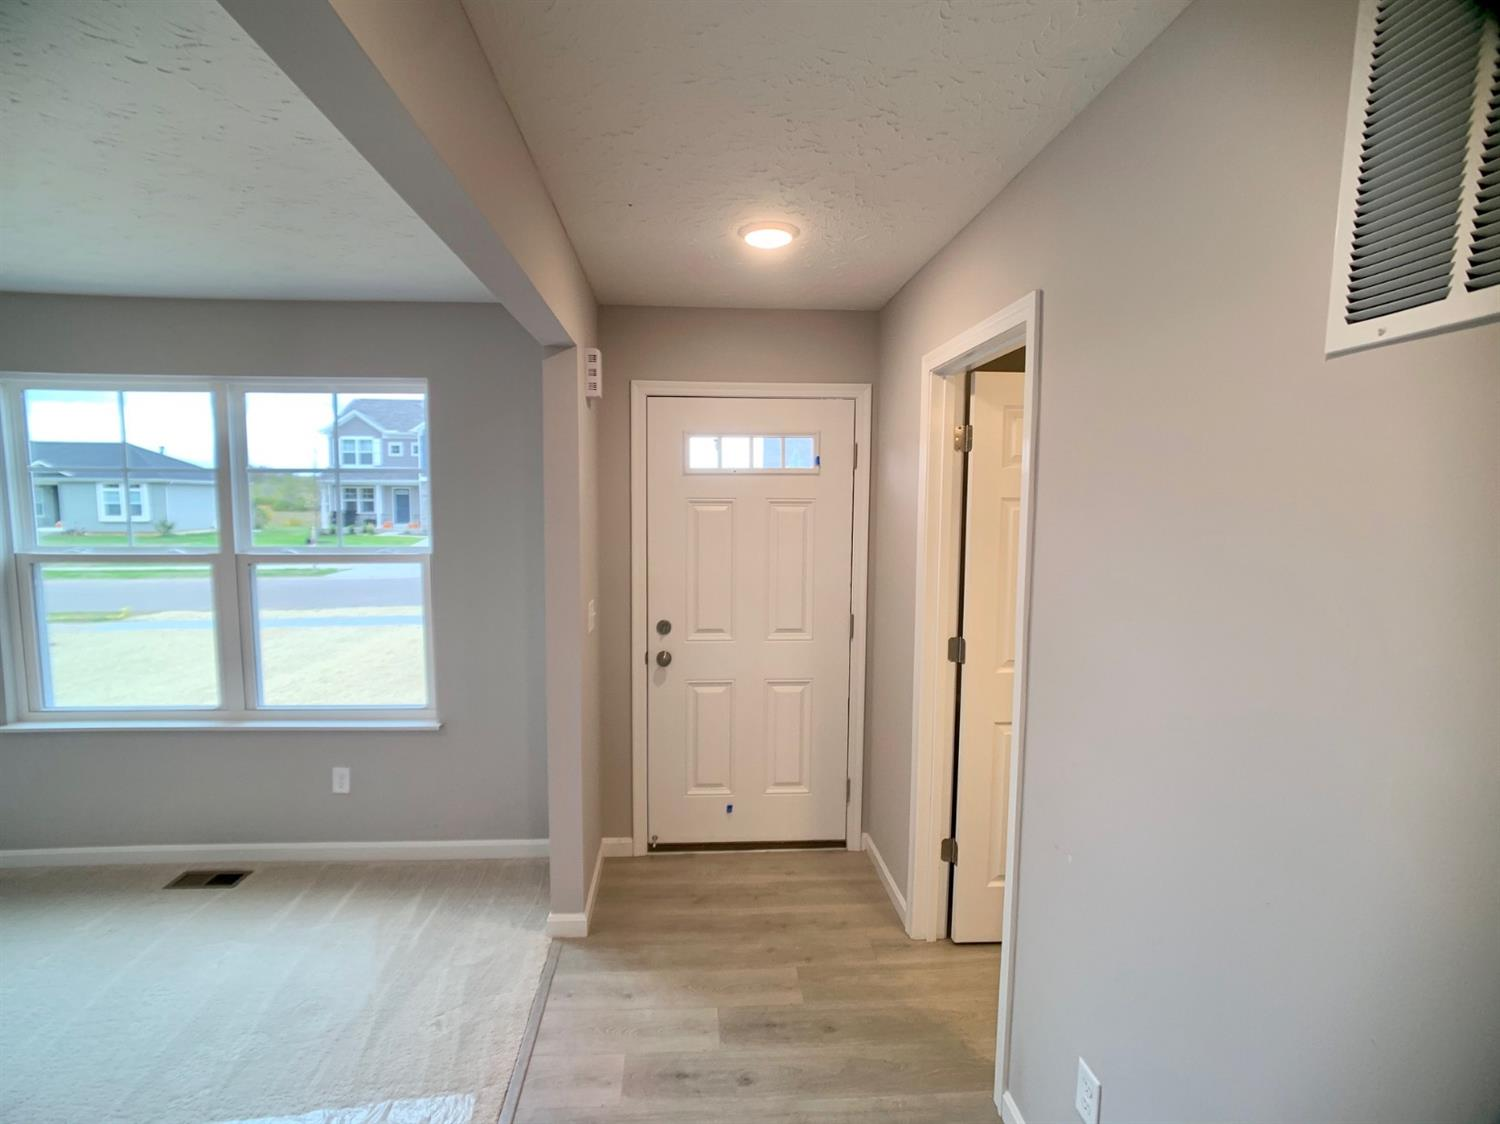 Photo 2 for 1082 Marty Lee Ln Carlisle, OH 45005